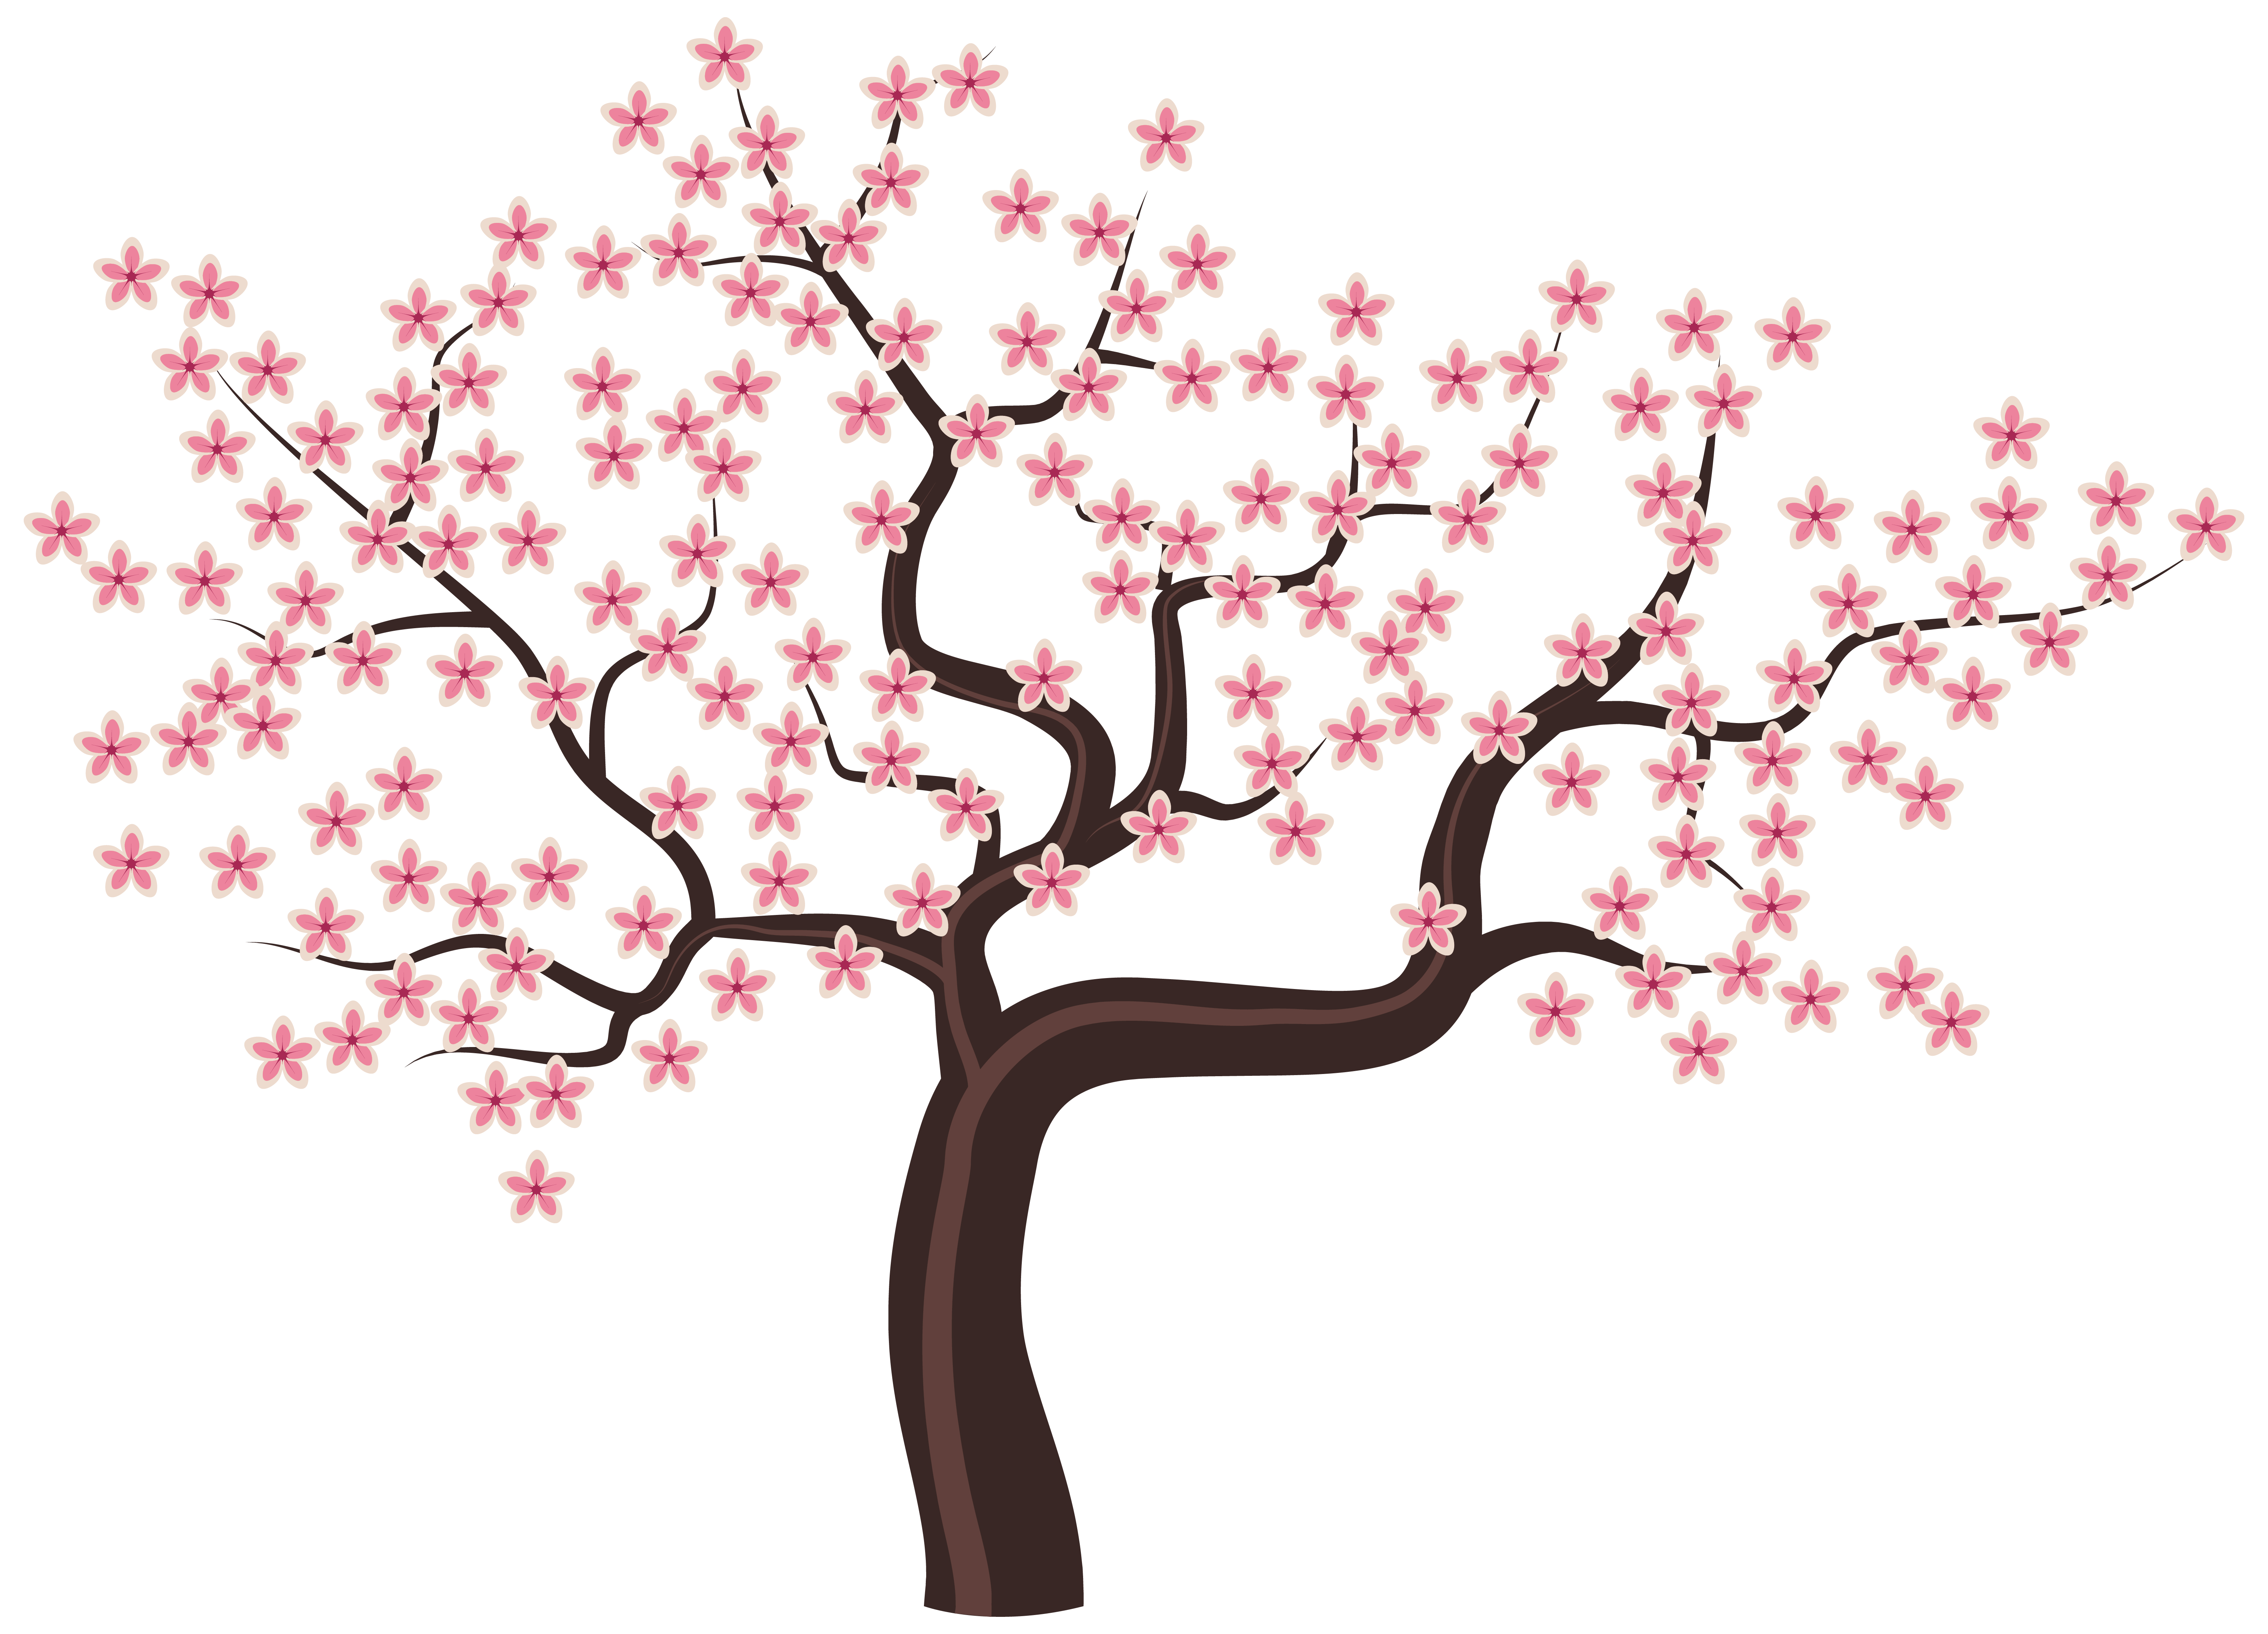 Tree with flowers clipart svg stock Tree with Flowers PNG Clipart Image svg stock